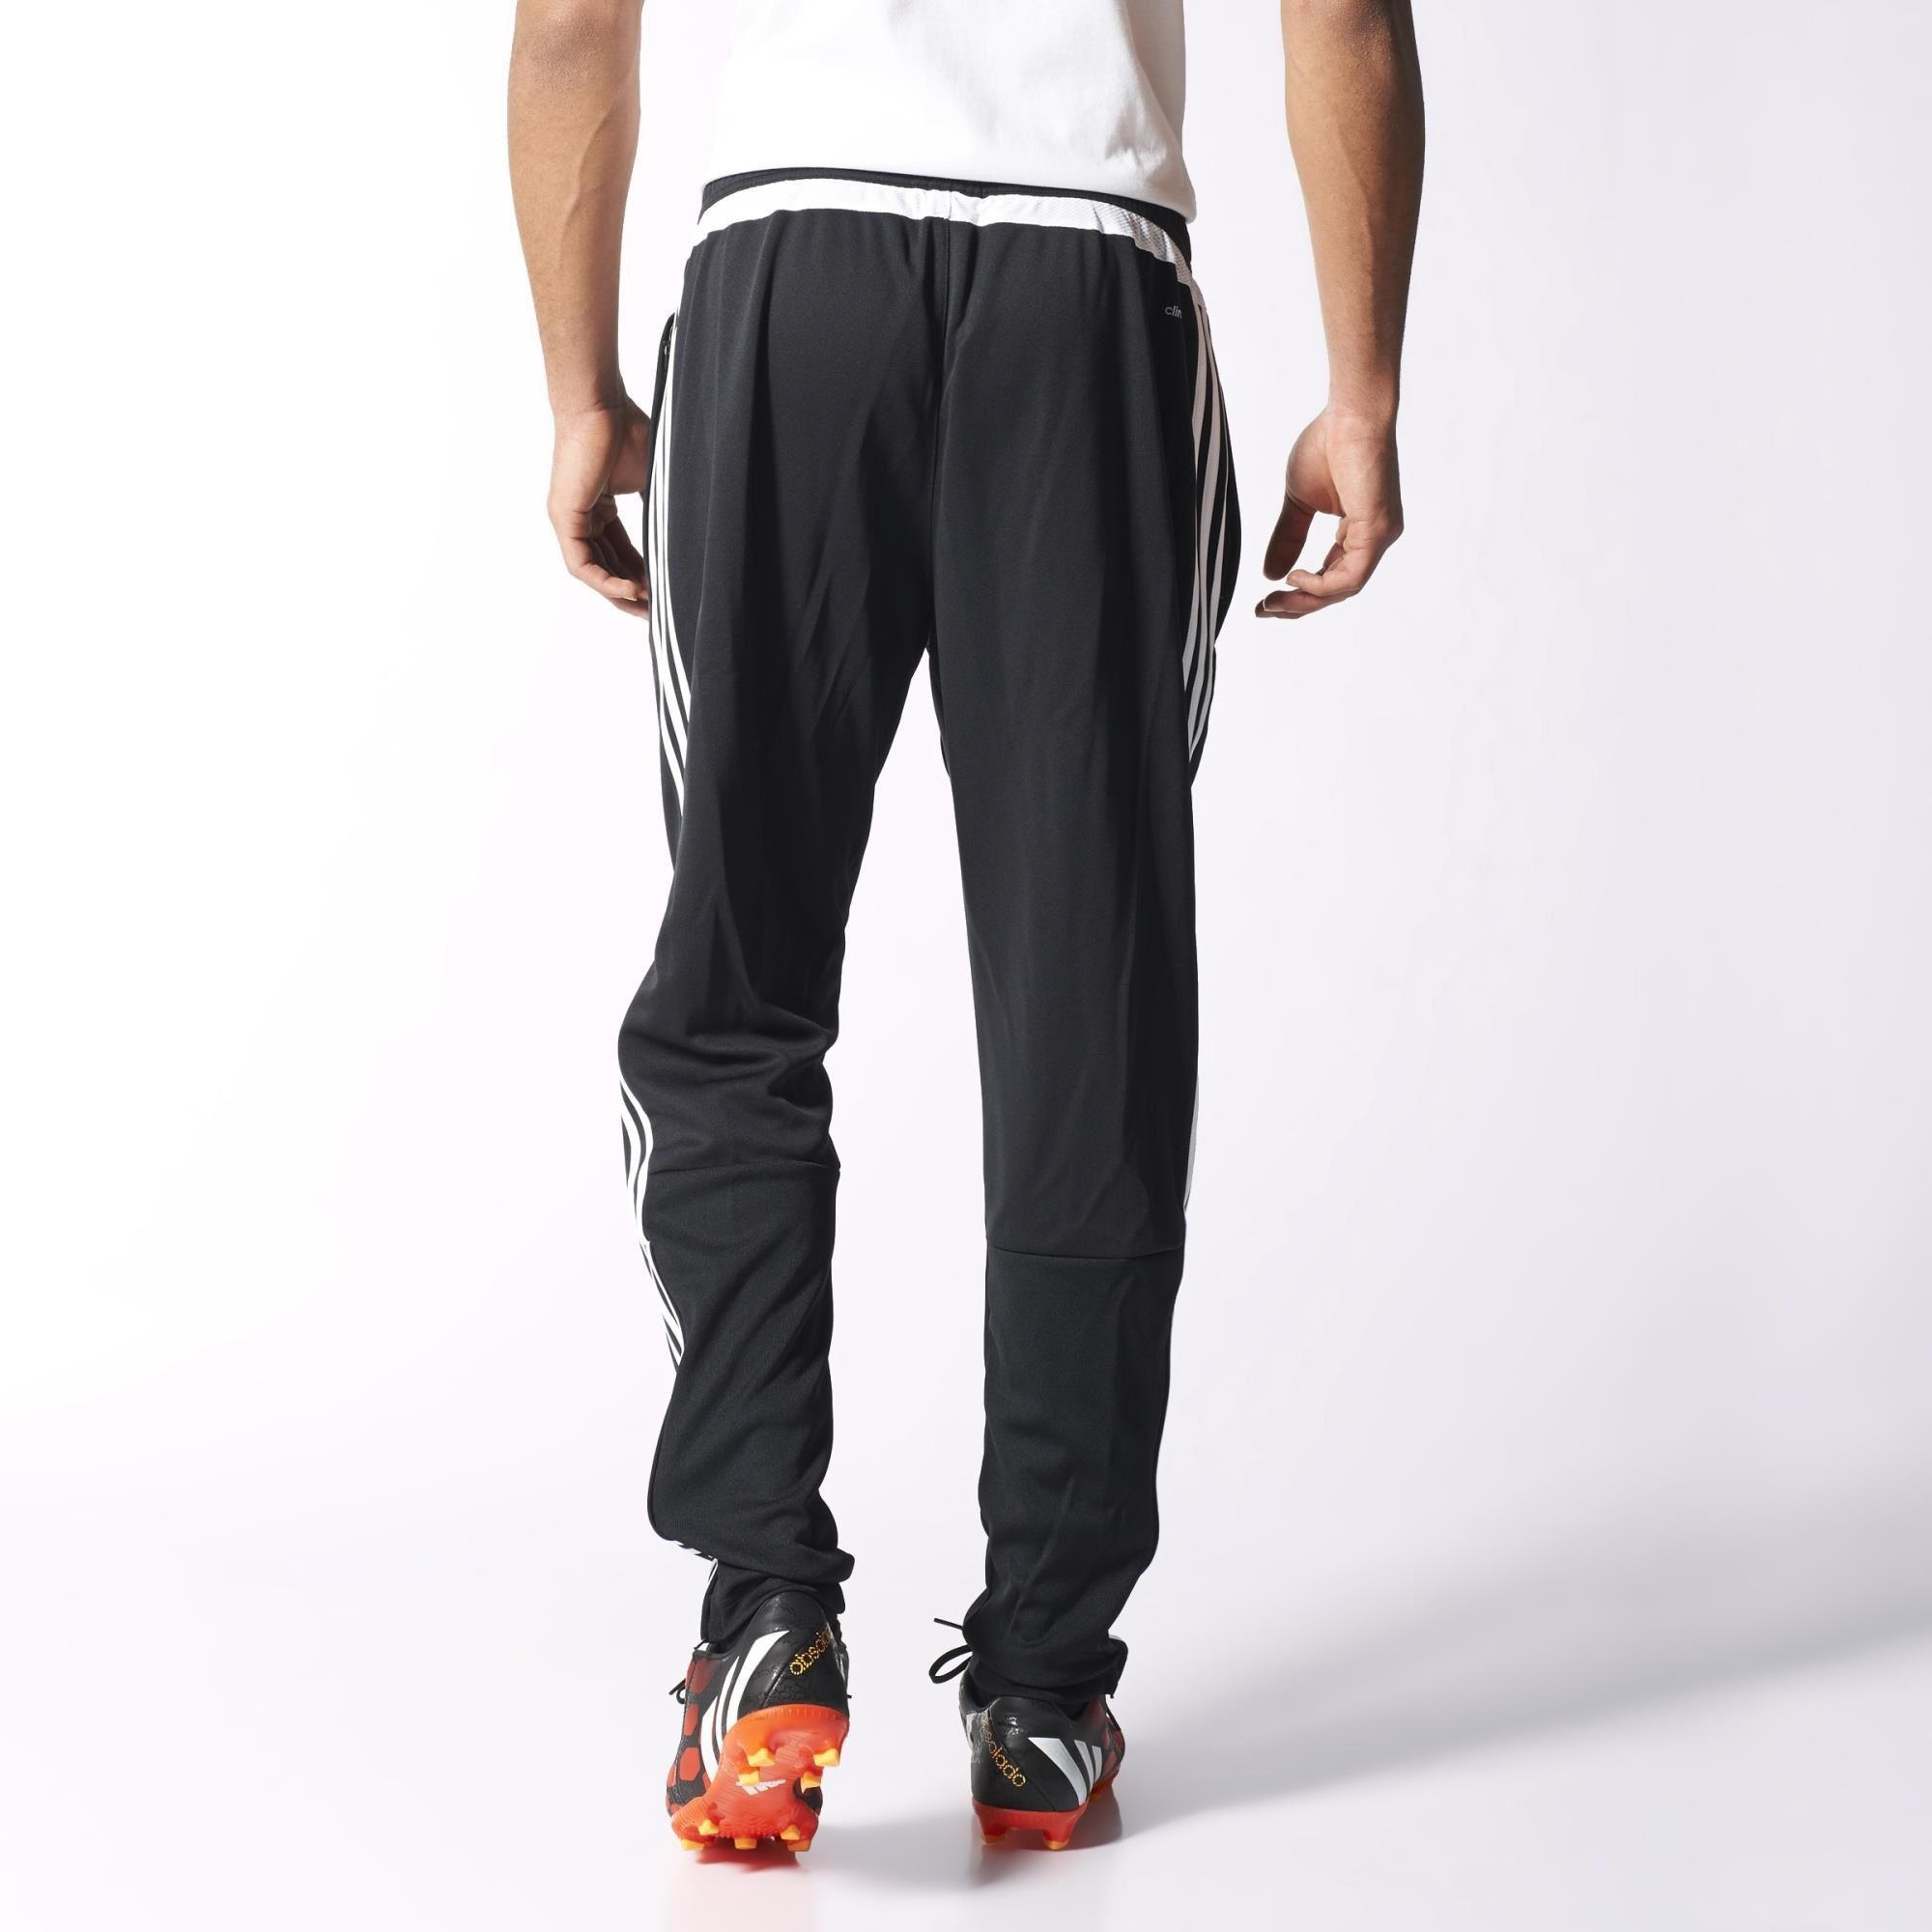 adidas tiro 15 training soccer pants from craftdelite quick. Black Bedroom Furniture Sets. Home Design Ideas